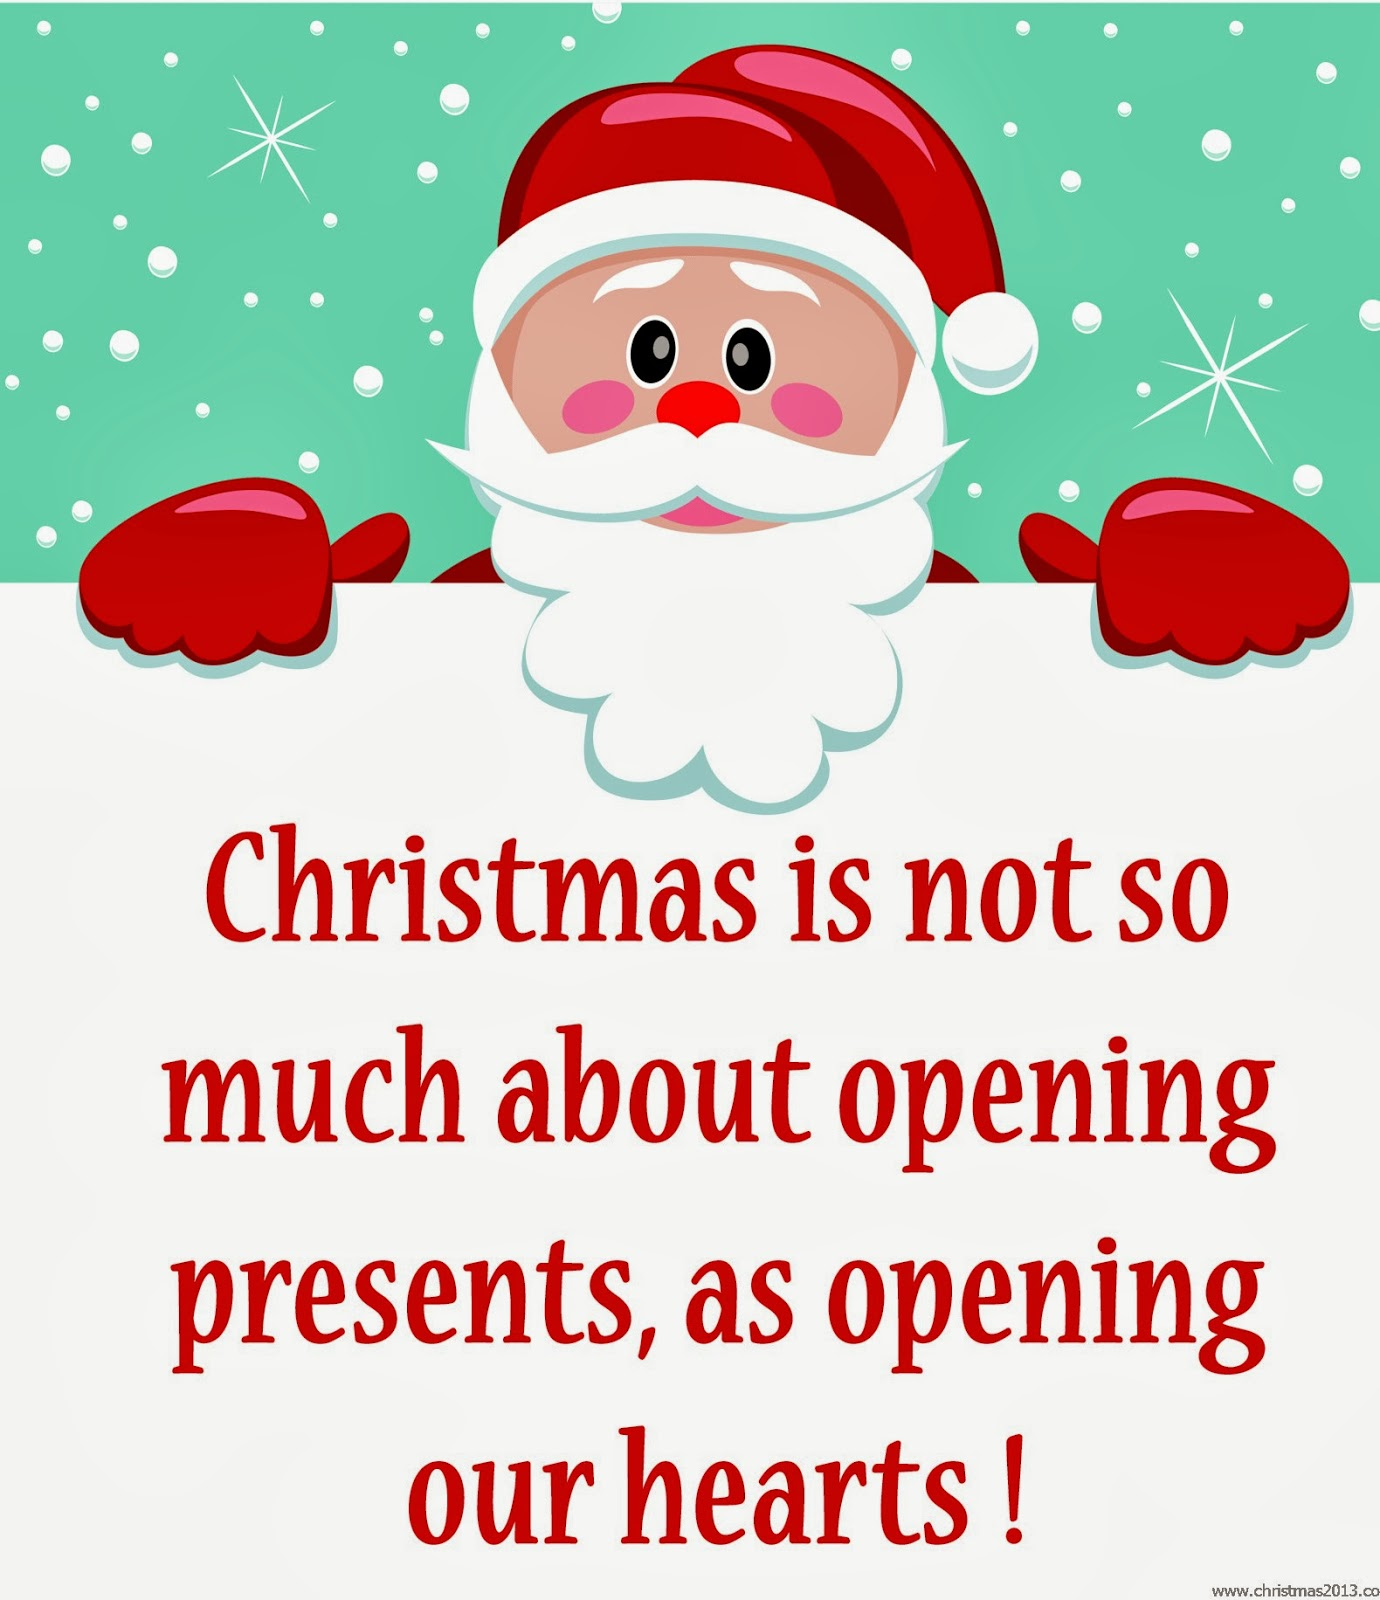 Funny Christmas Pic Quotes: 25 Best Christmas Quotes And Wishes